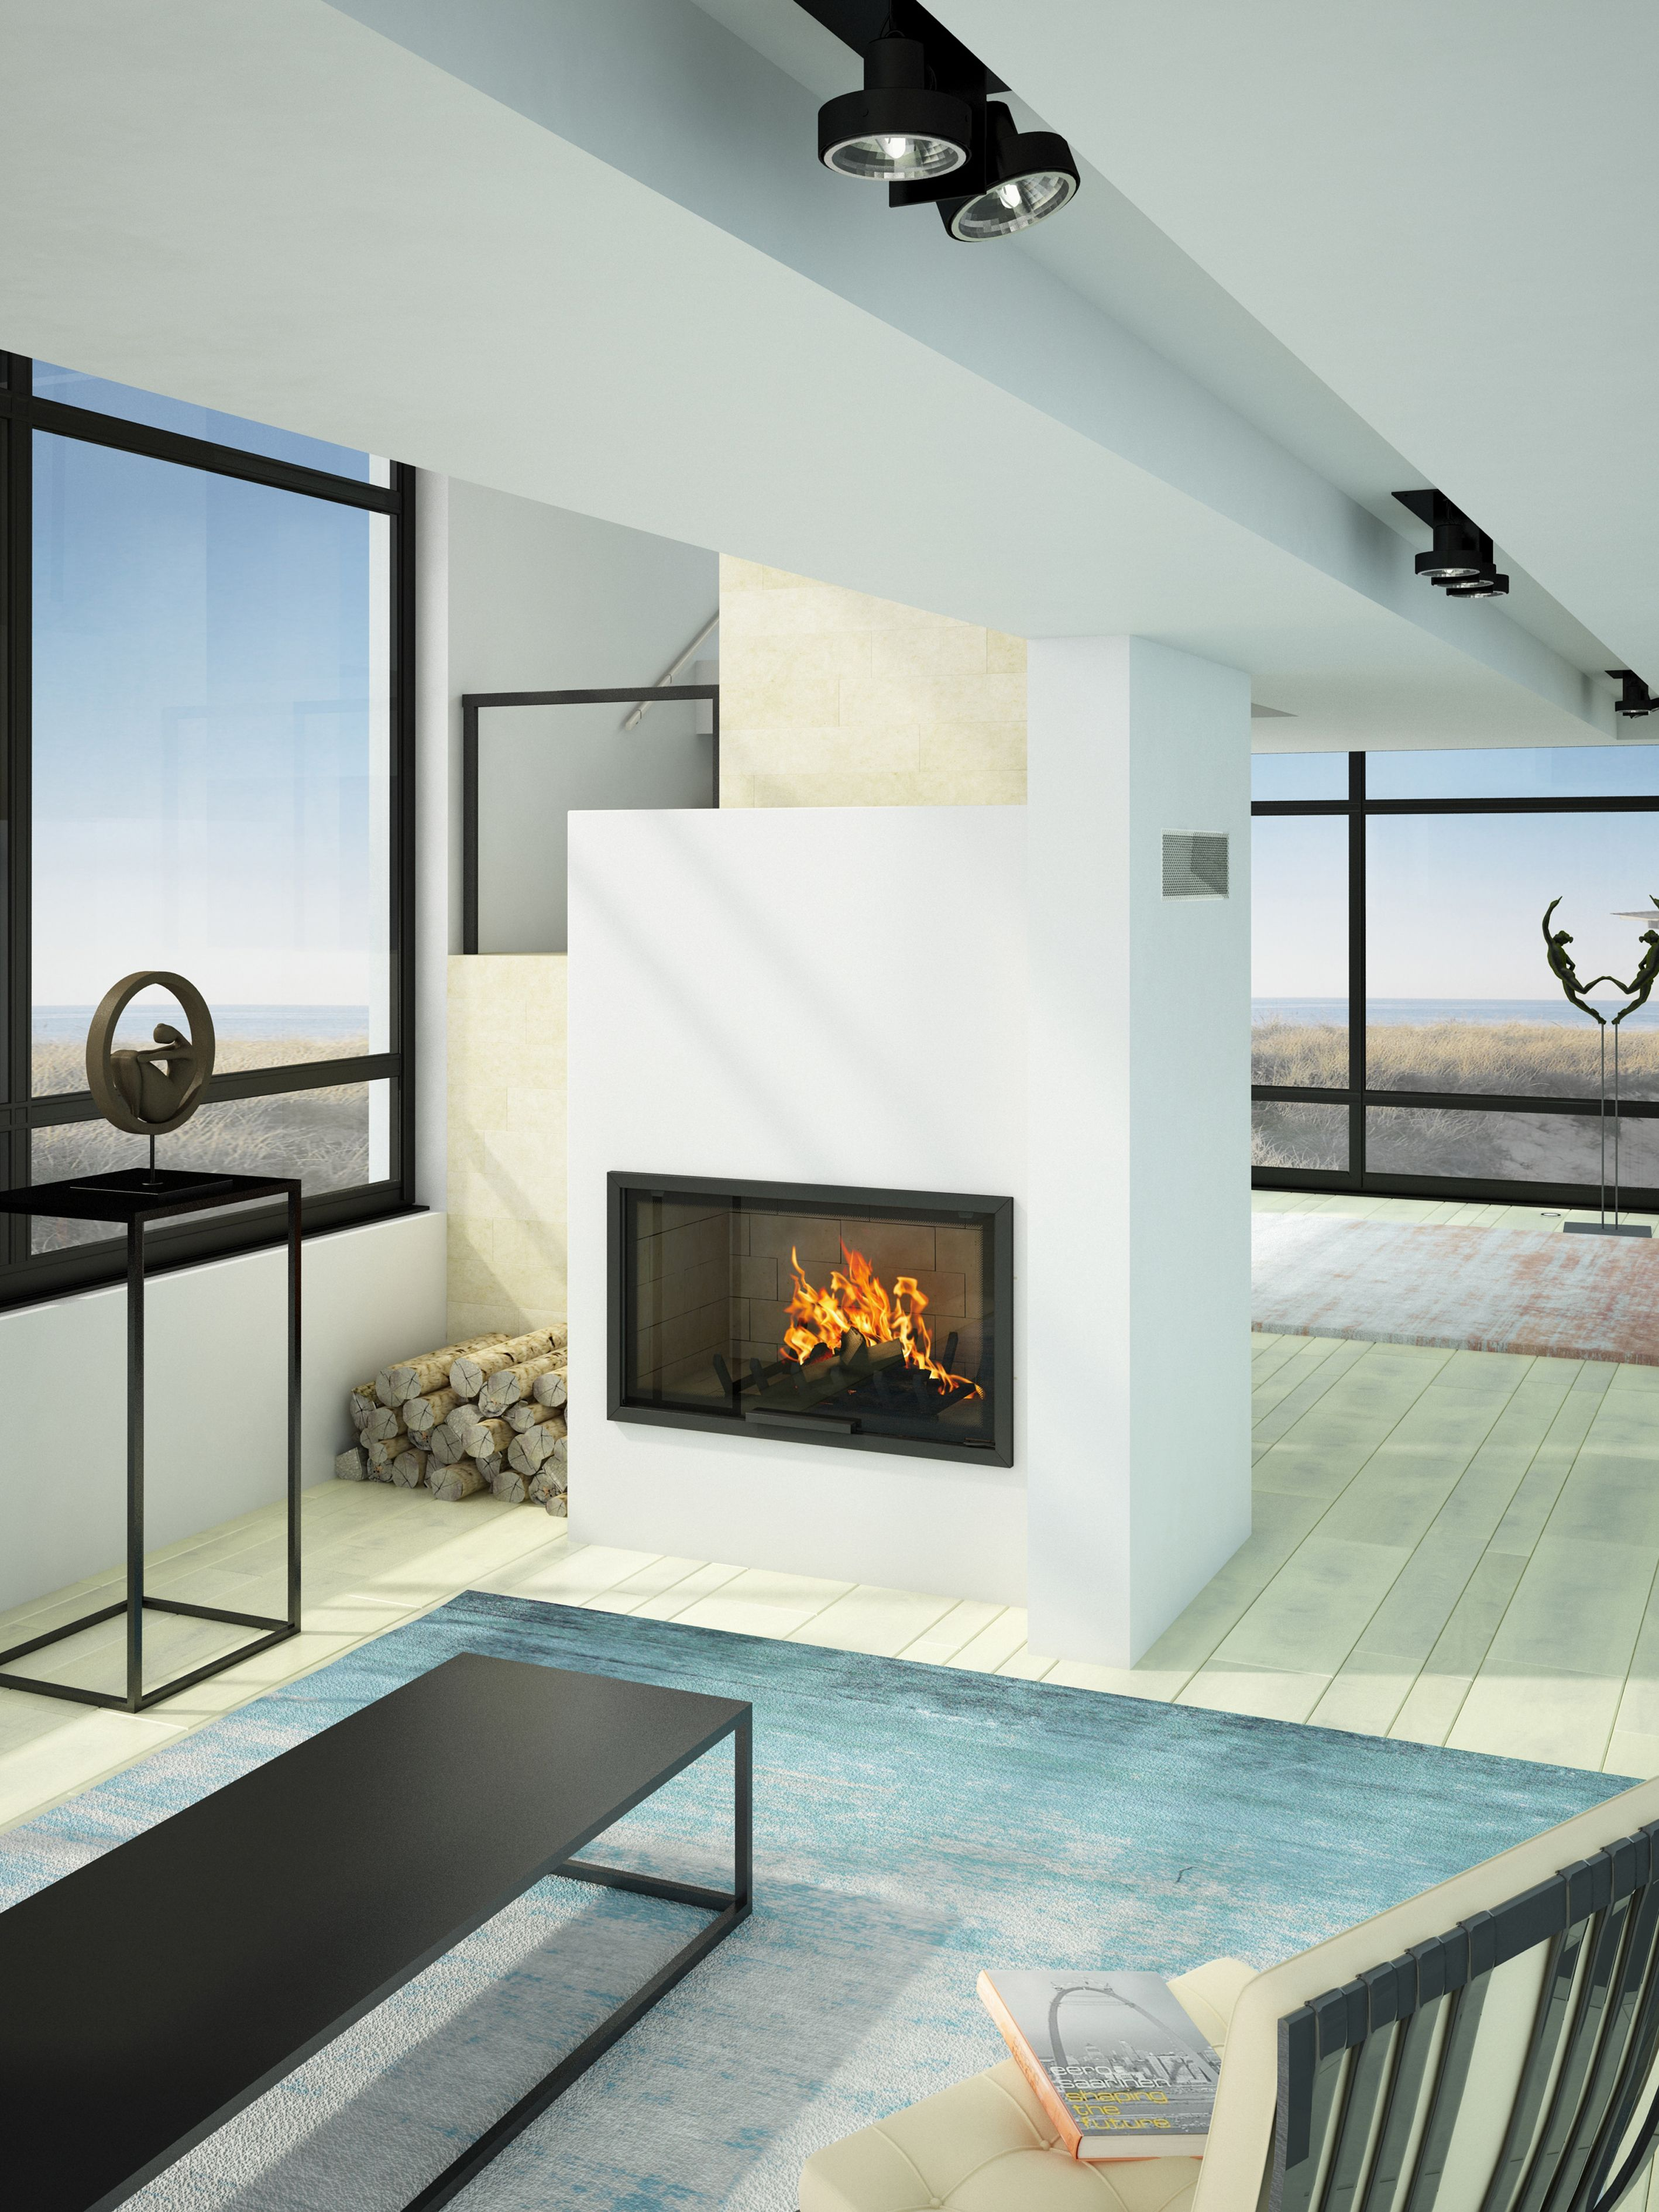 AXIS H1200 contemporary inbuilt fireplace The artisan